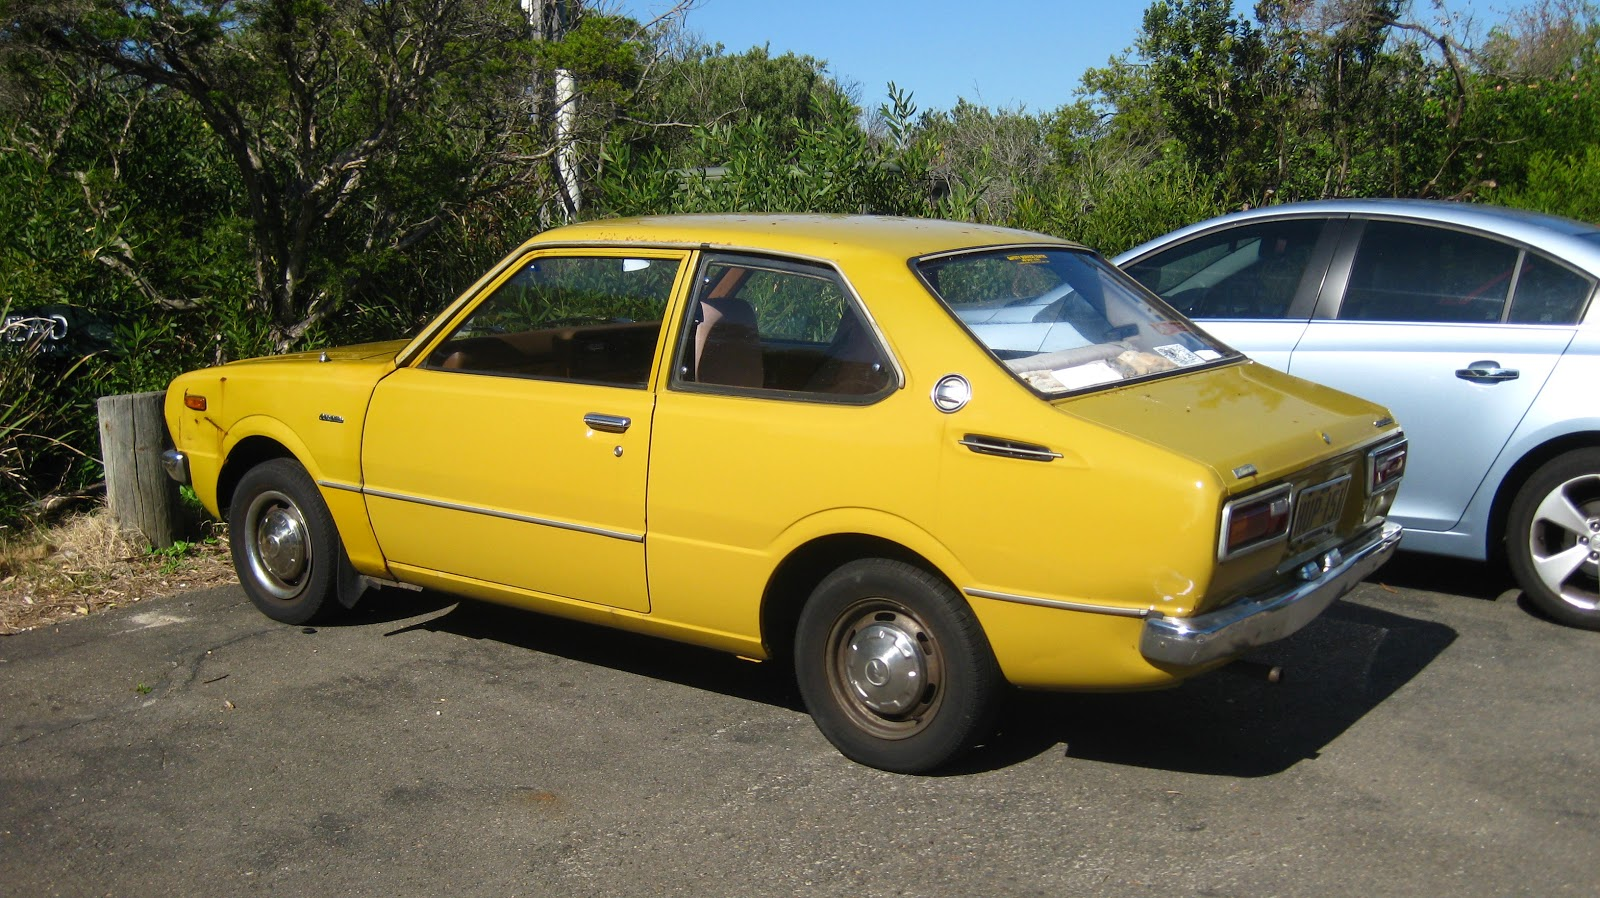 aussie old parked cars 1976 toyota corolla 2 door sedan. Black Bedroom Furniture Sets. Home Design Ideas